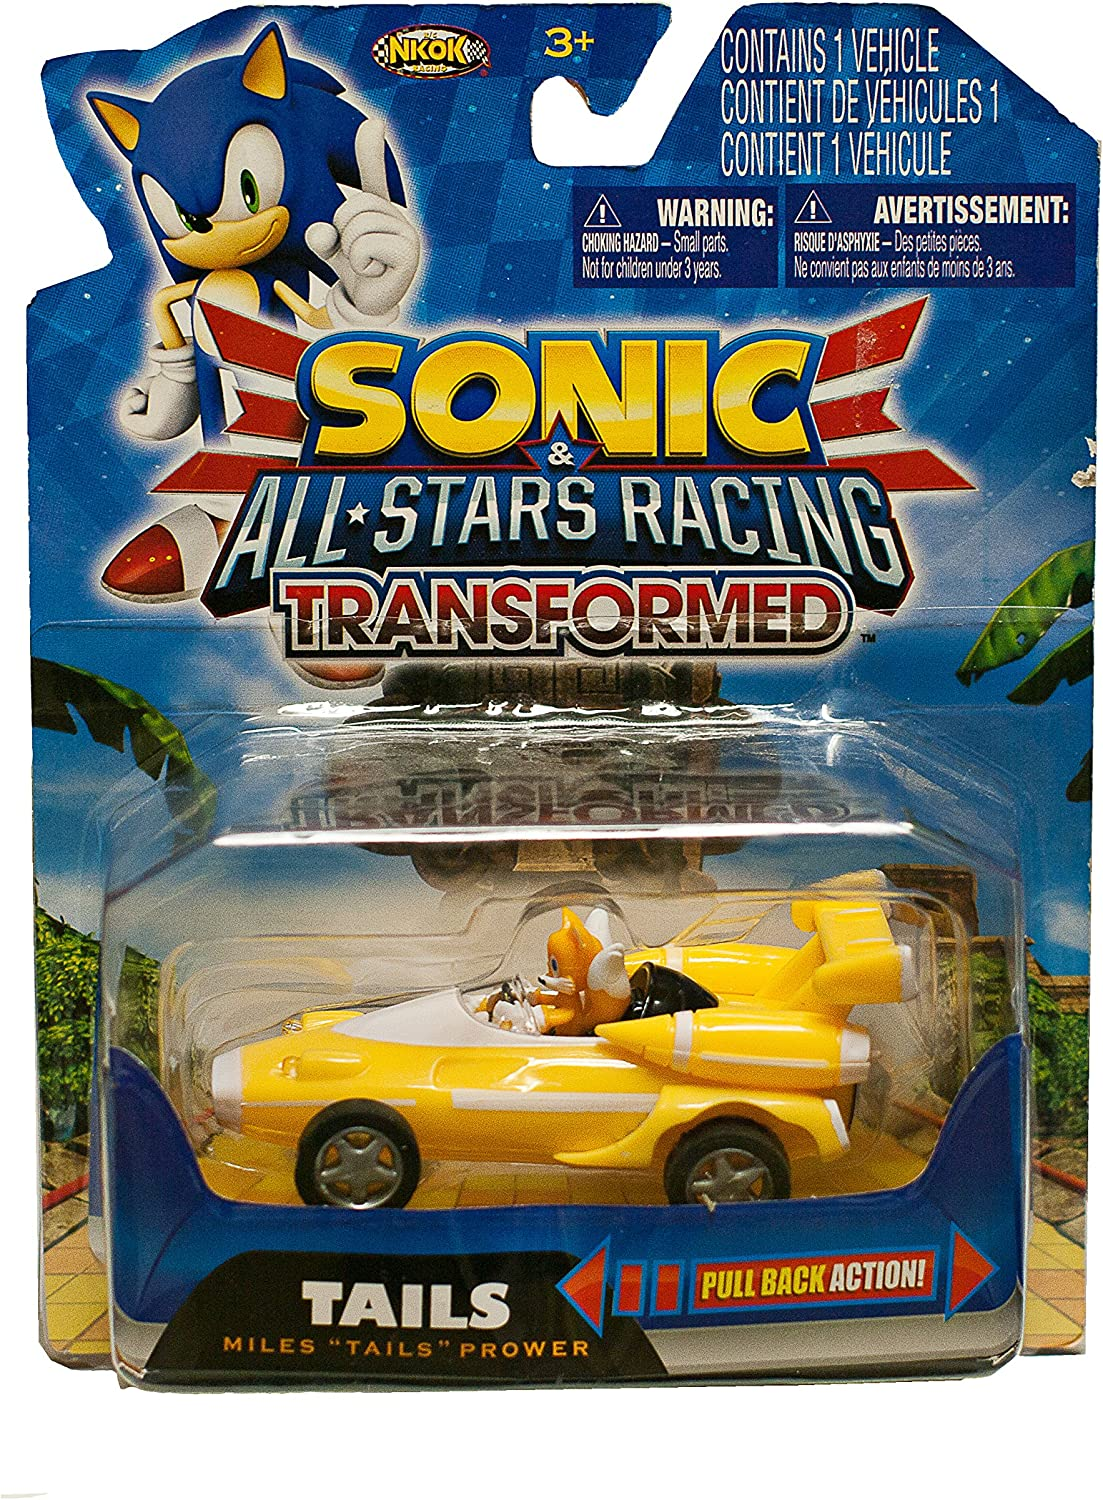 Sonic the Hedgehog and Sega All Stars Racing Transformed  Miles Tails Prower by NKOK